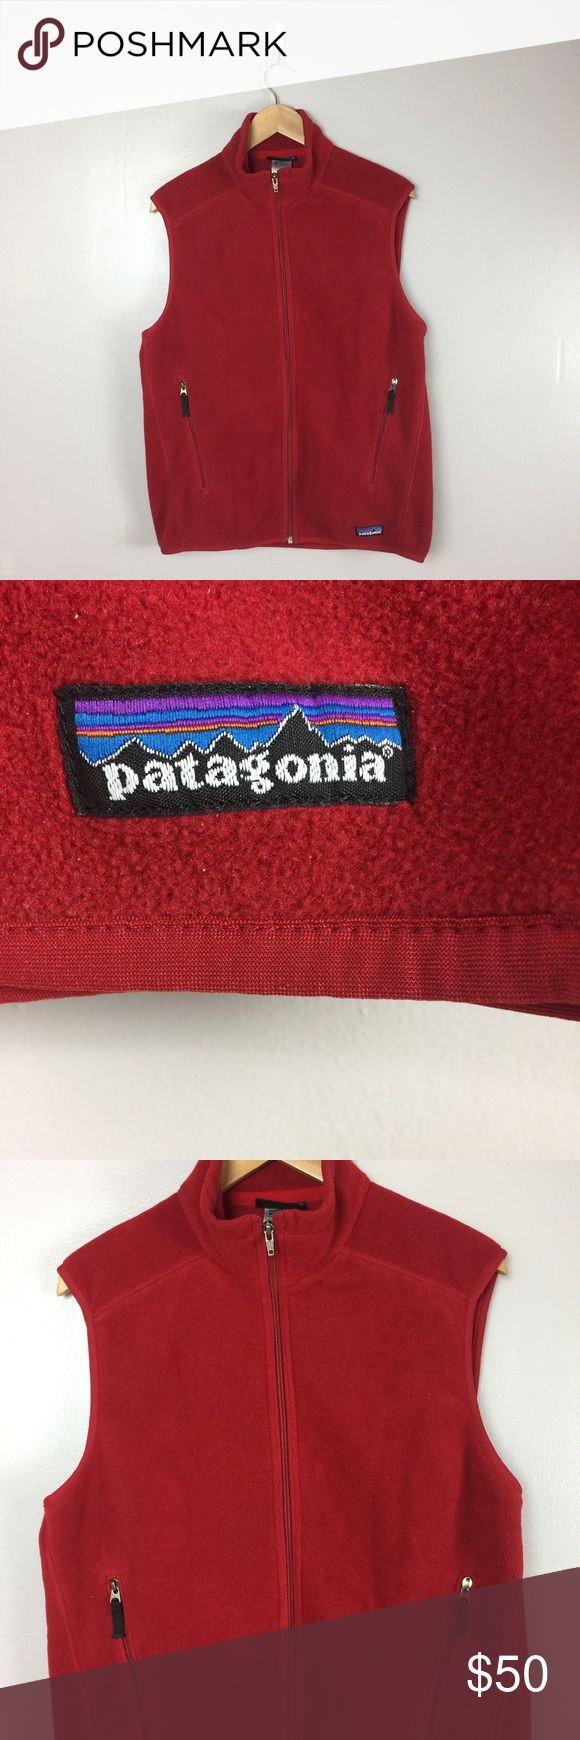 """Patagonia Synchilla Vest Patagonia Synchilla Fleece Full Zip Front Red Vest Jacket Men's Size Medium   pit to pit 22"""" length 25.5""""  excellent condition patagonia Sweaters"""